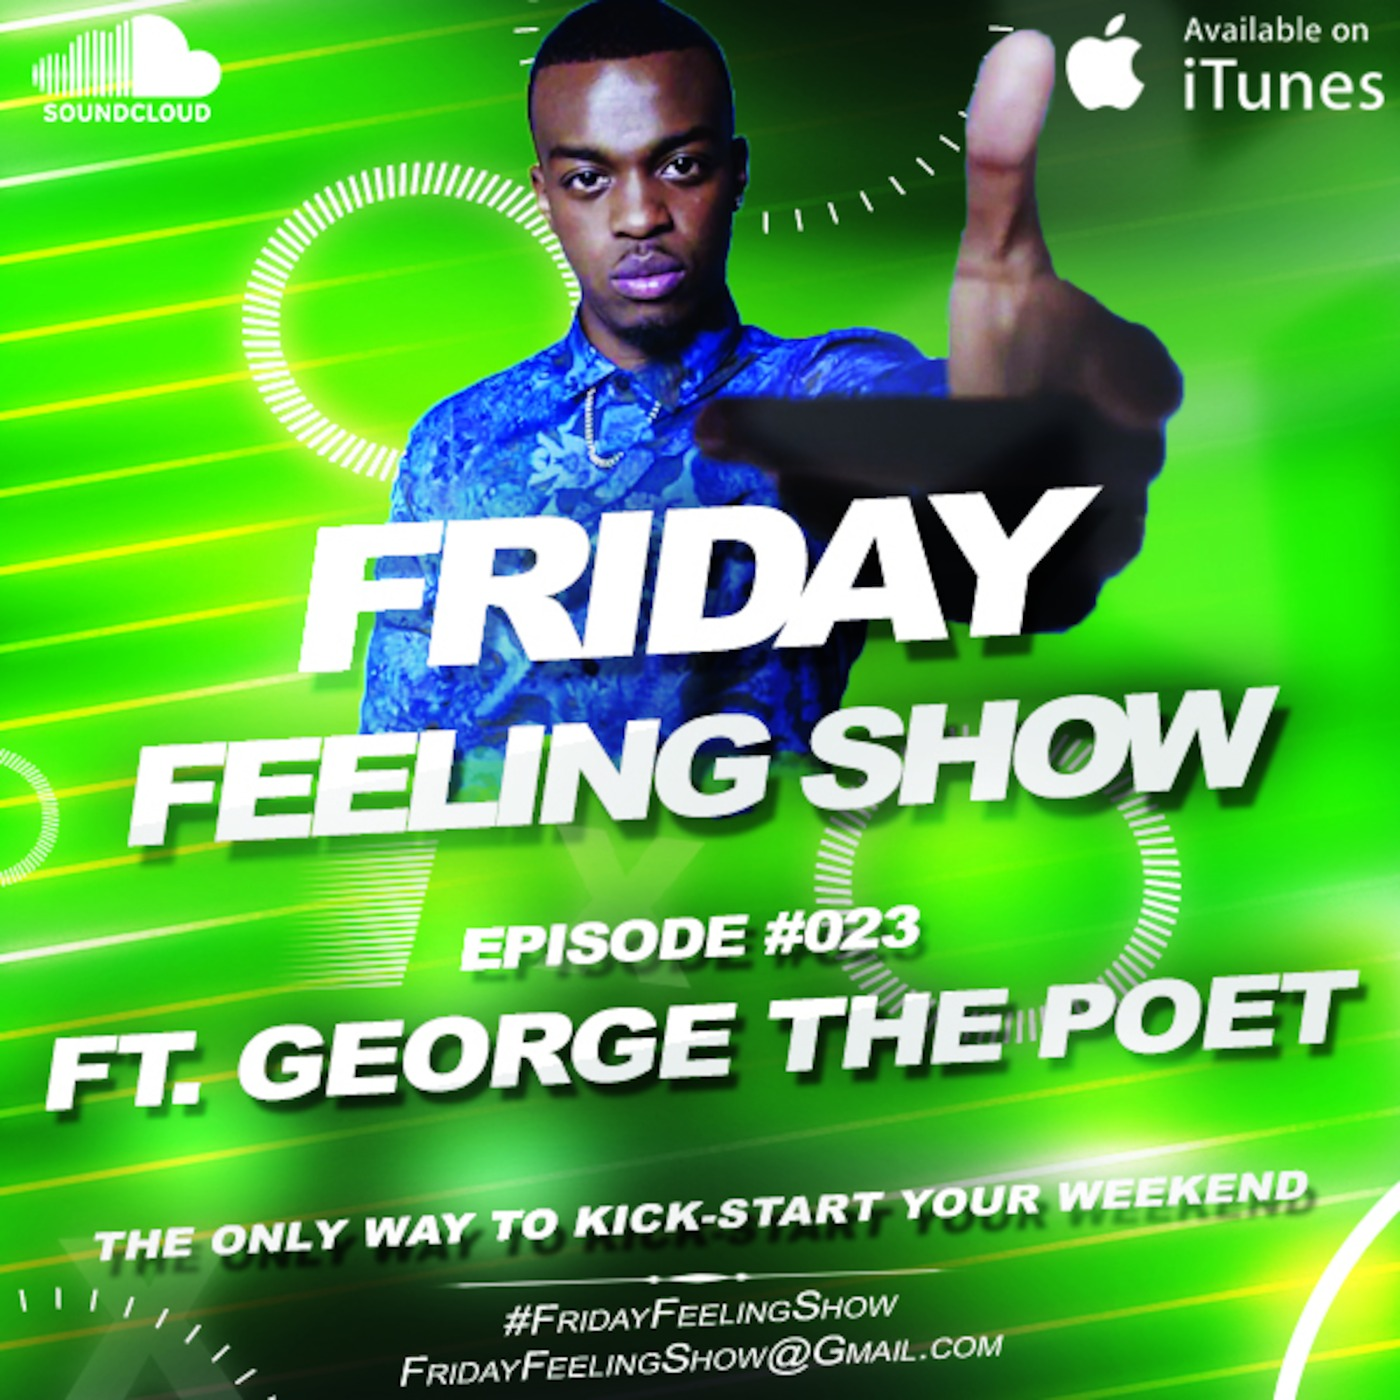 Friday Feeling Show Podcast